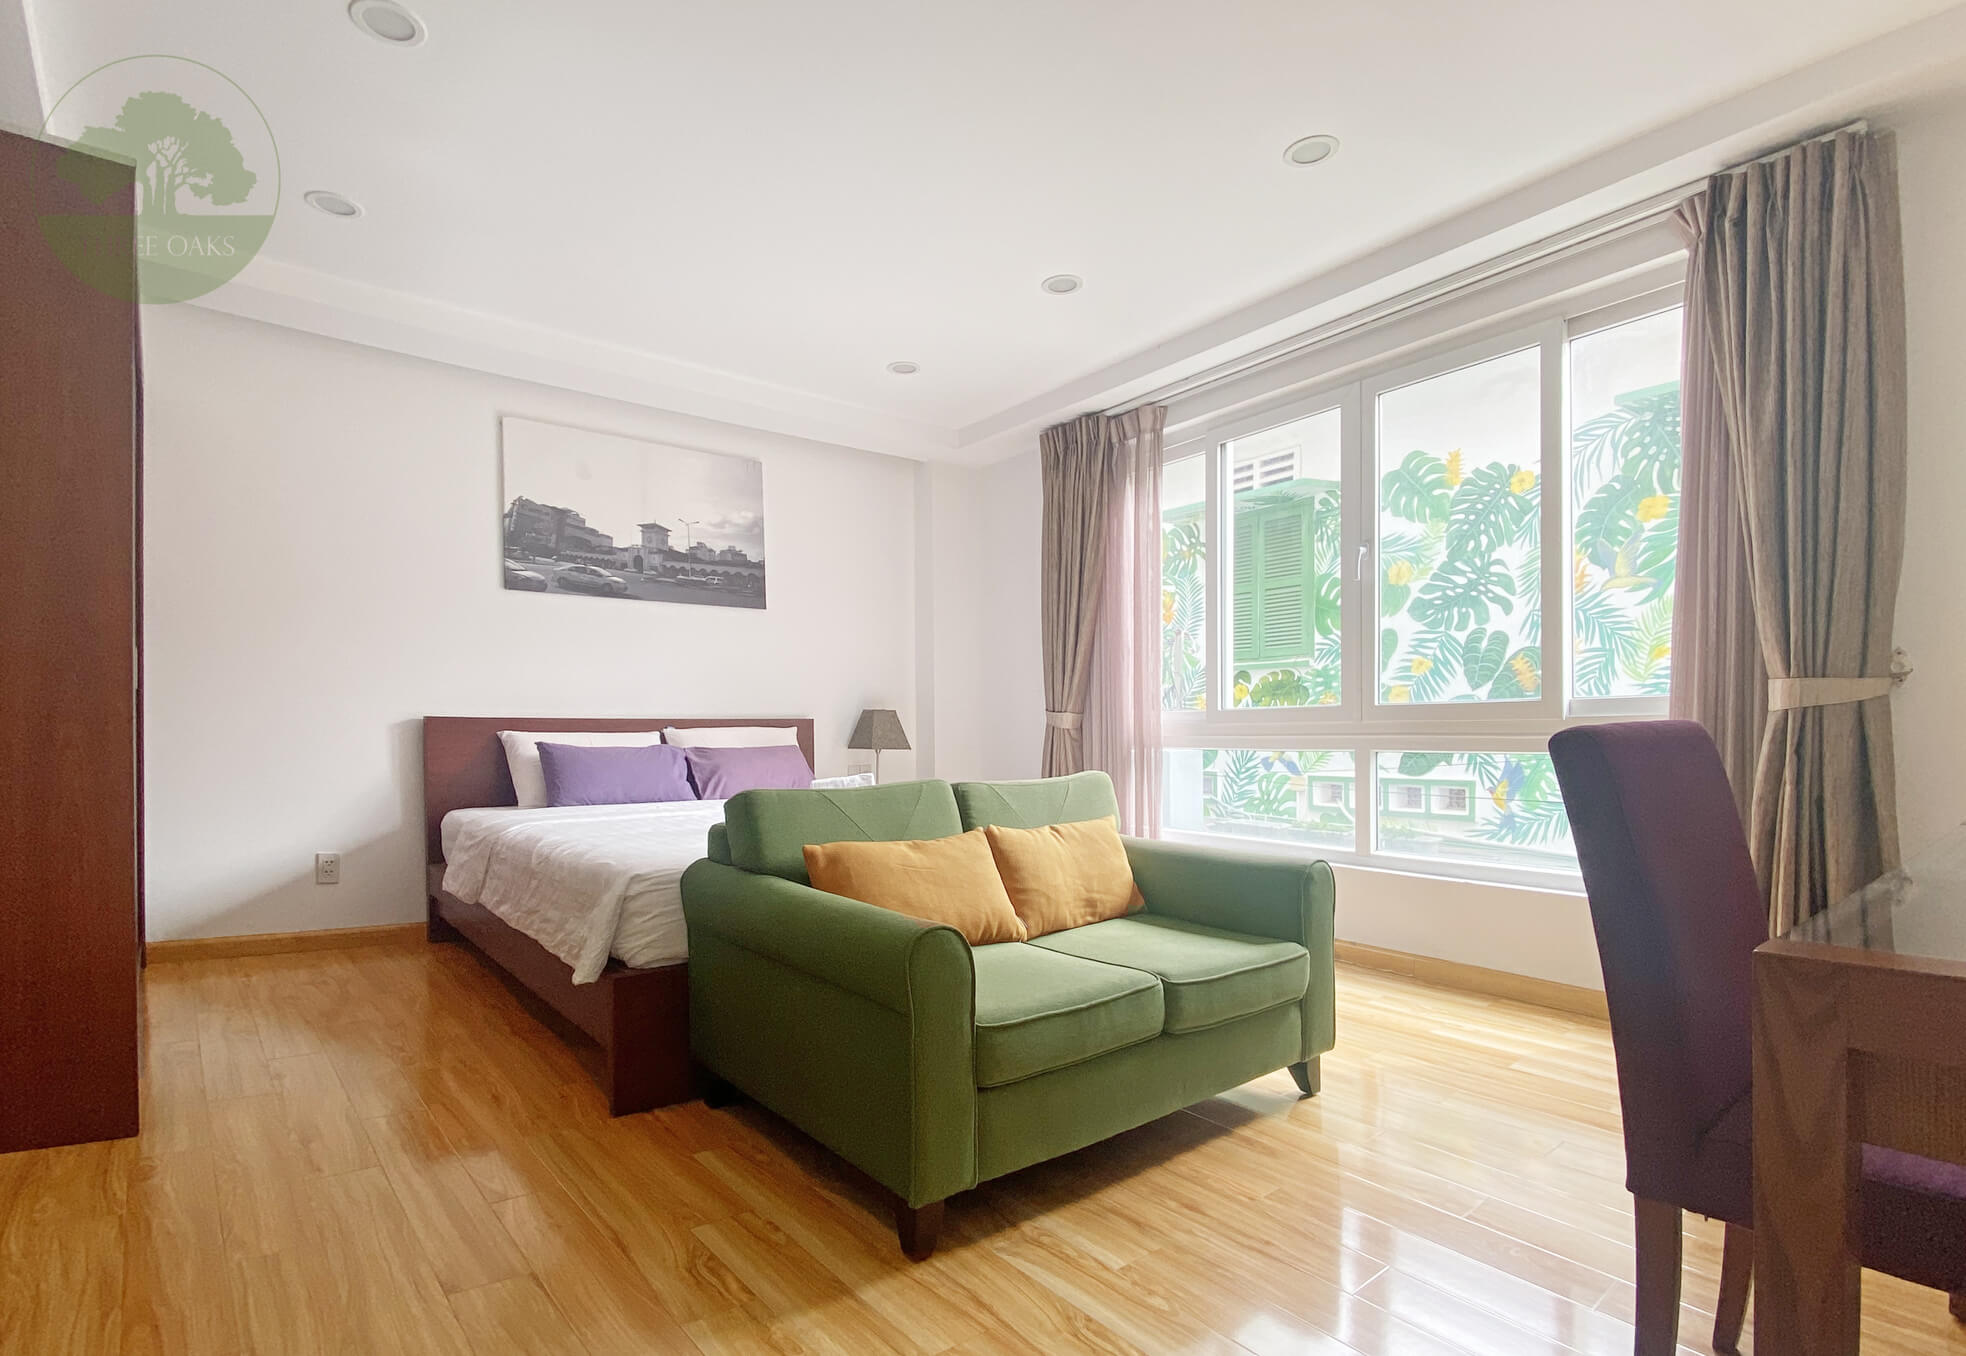 Housing-Apartments-for-rent-in-Saigon-tybe-a-1a-14